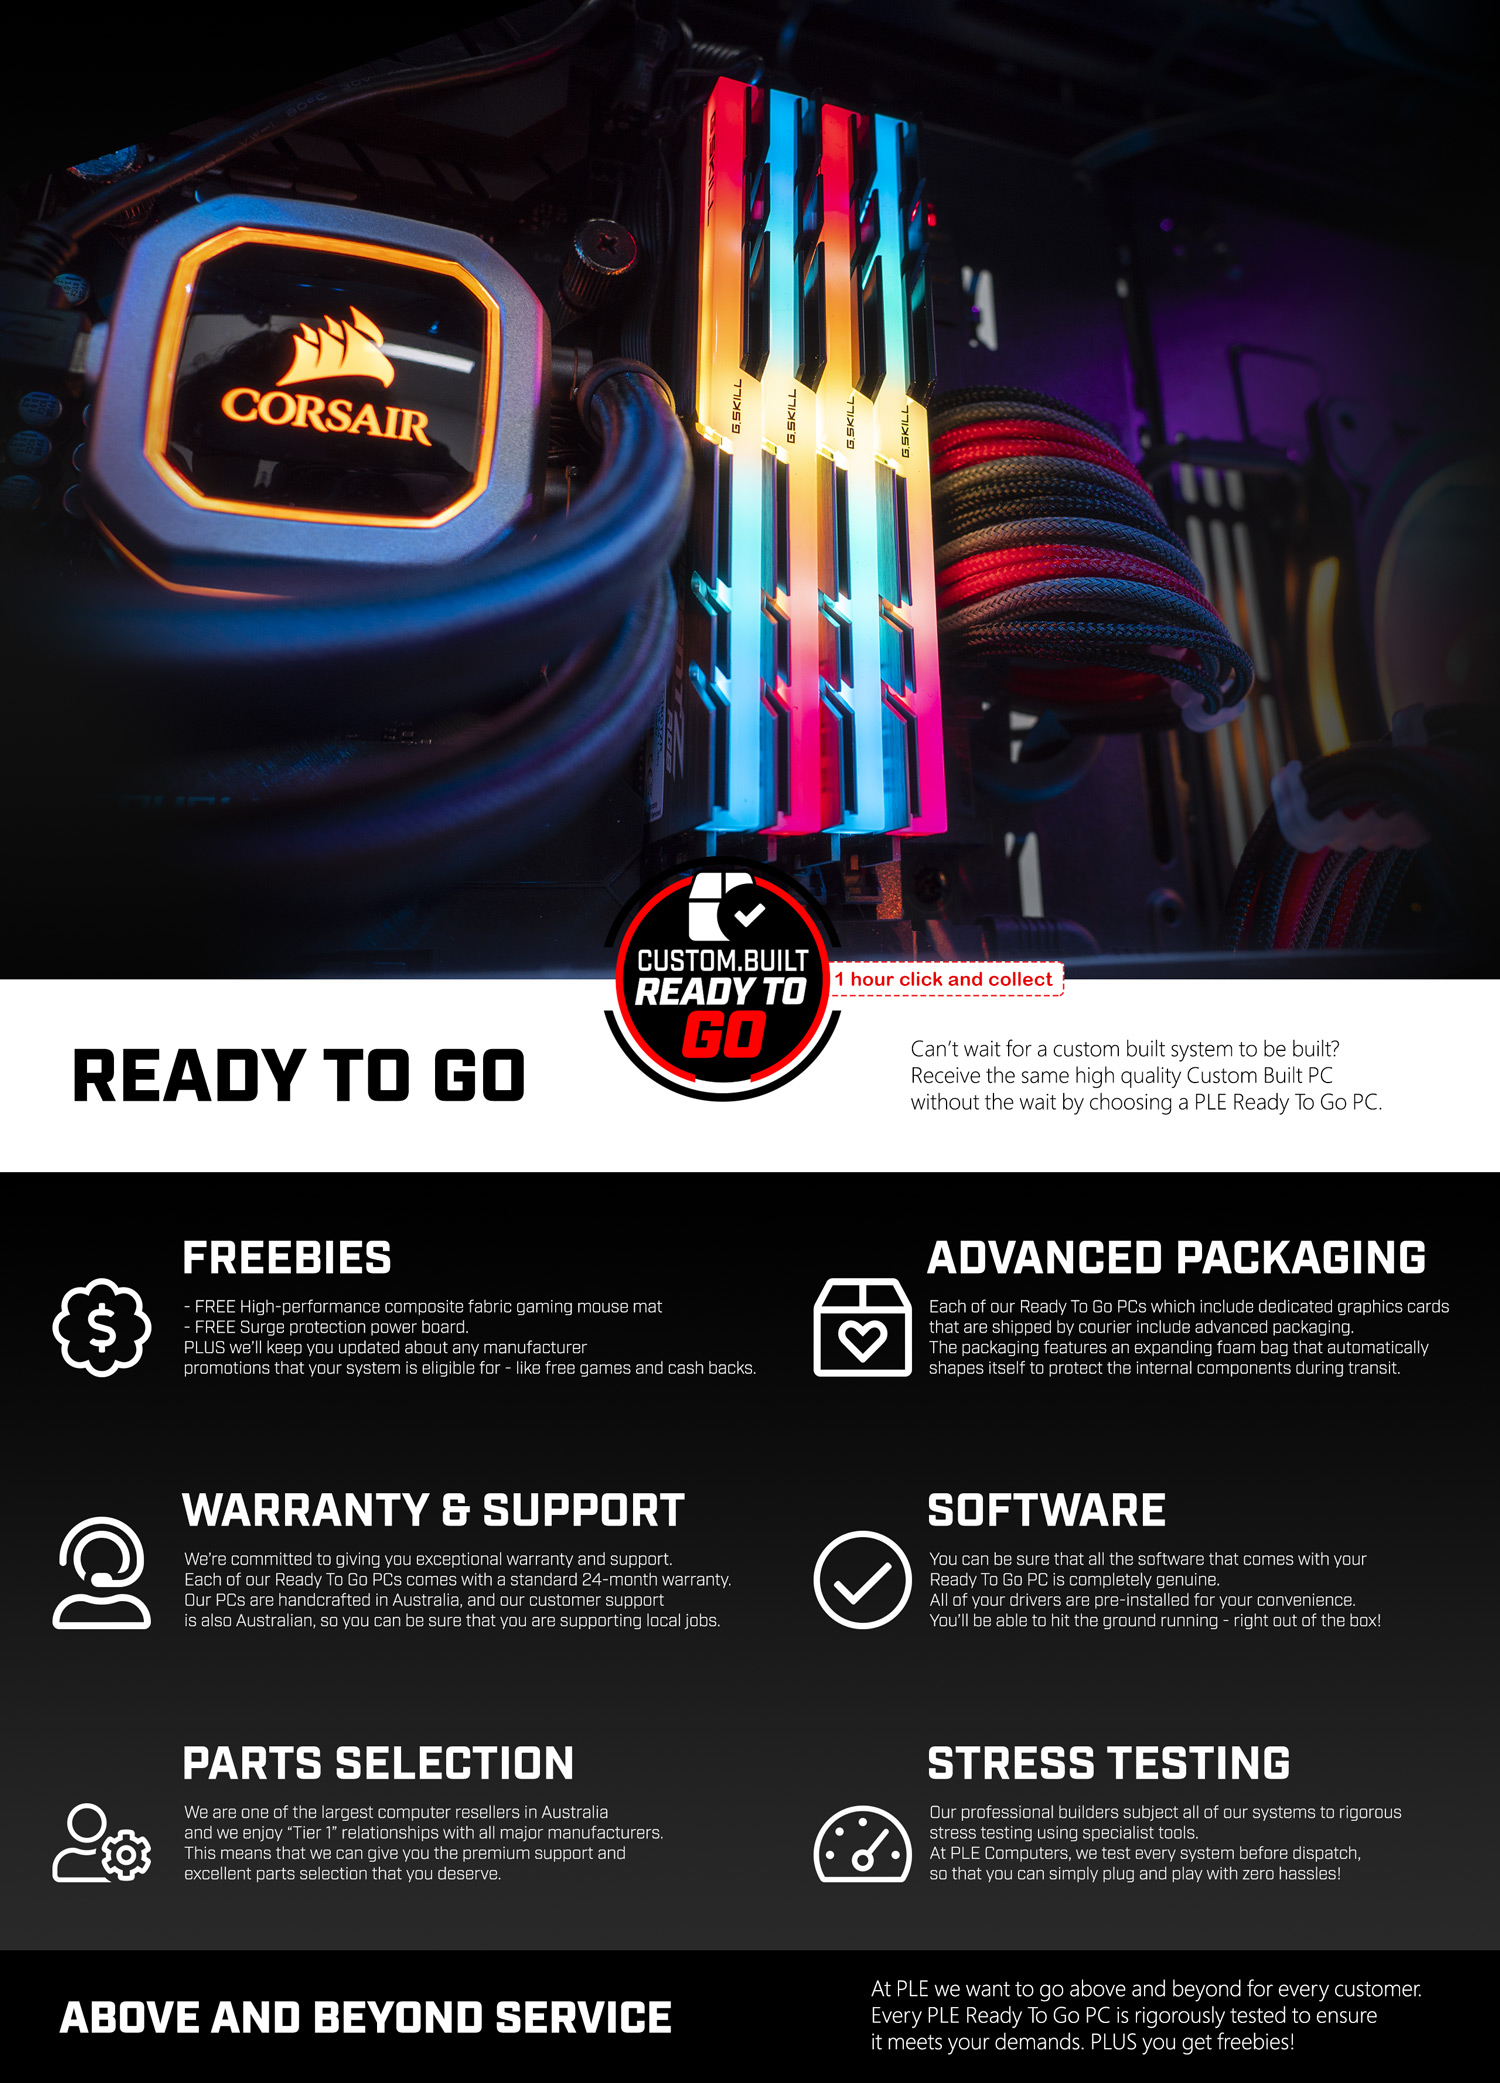 A large marketing image providing additional information about the product PLE Helix Prebuilt Gaming PC - Additional alt info not provided